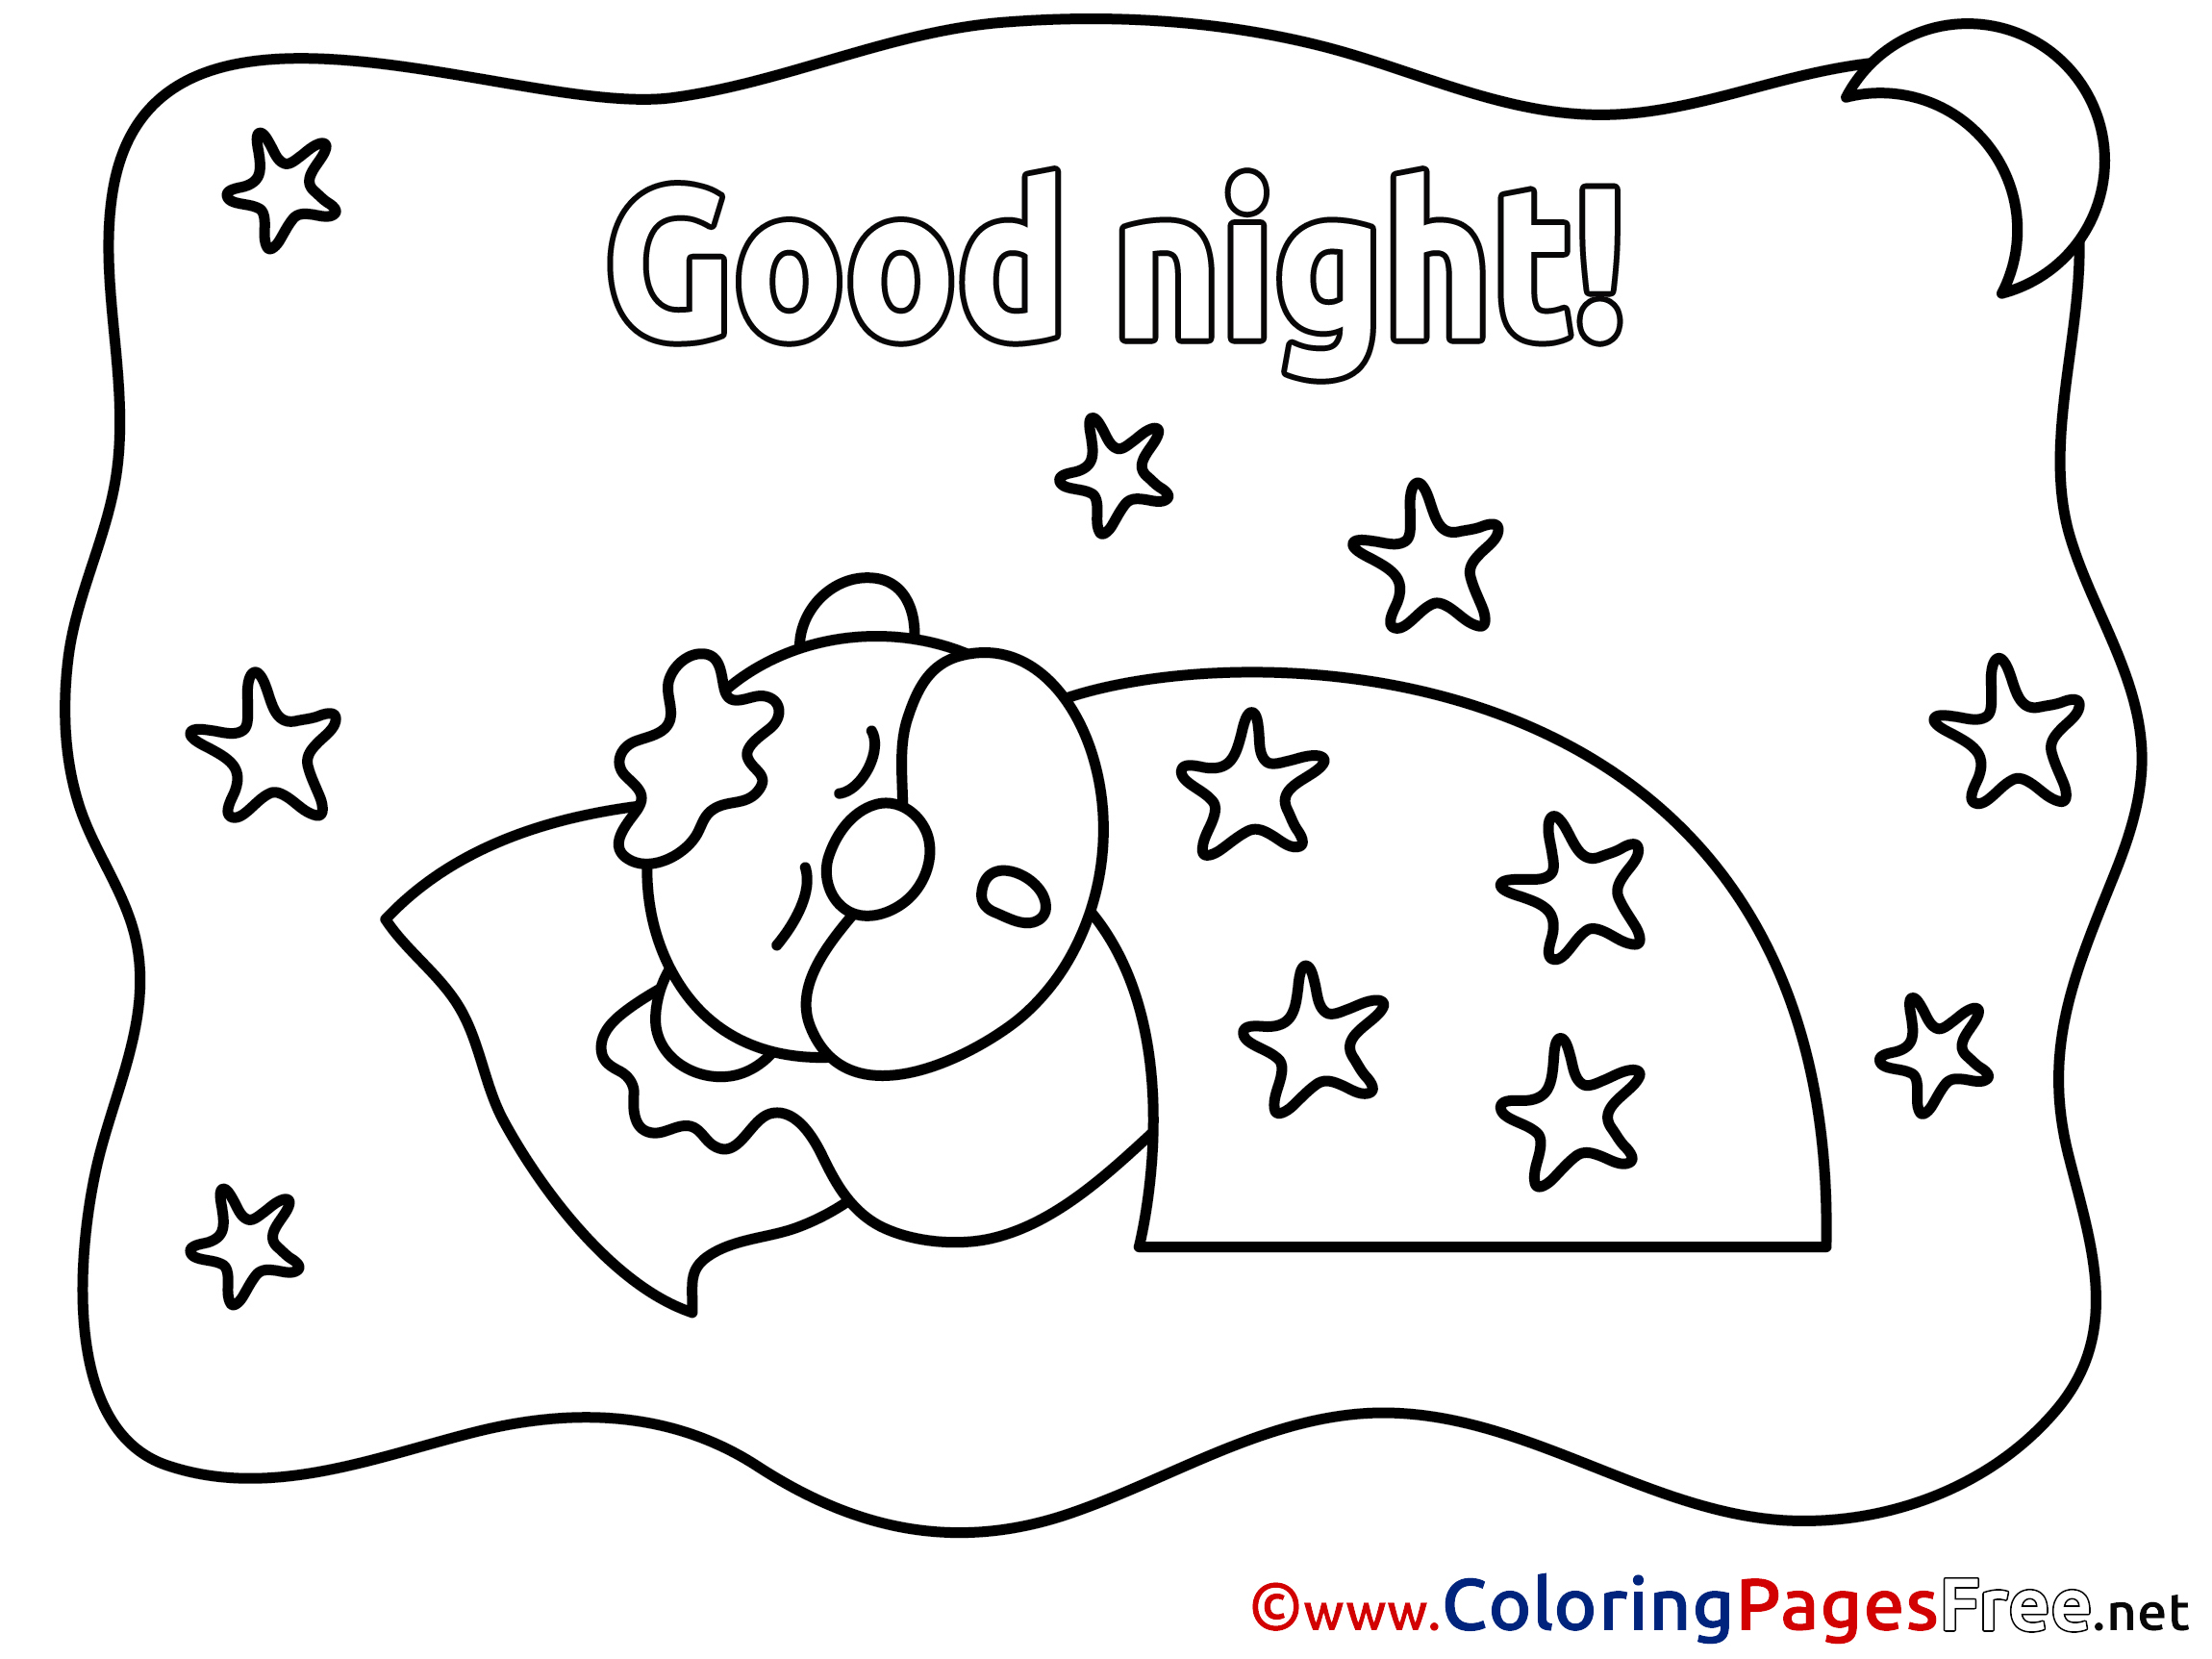 free night coloring pages - photo#20